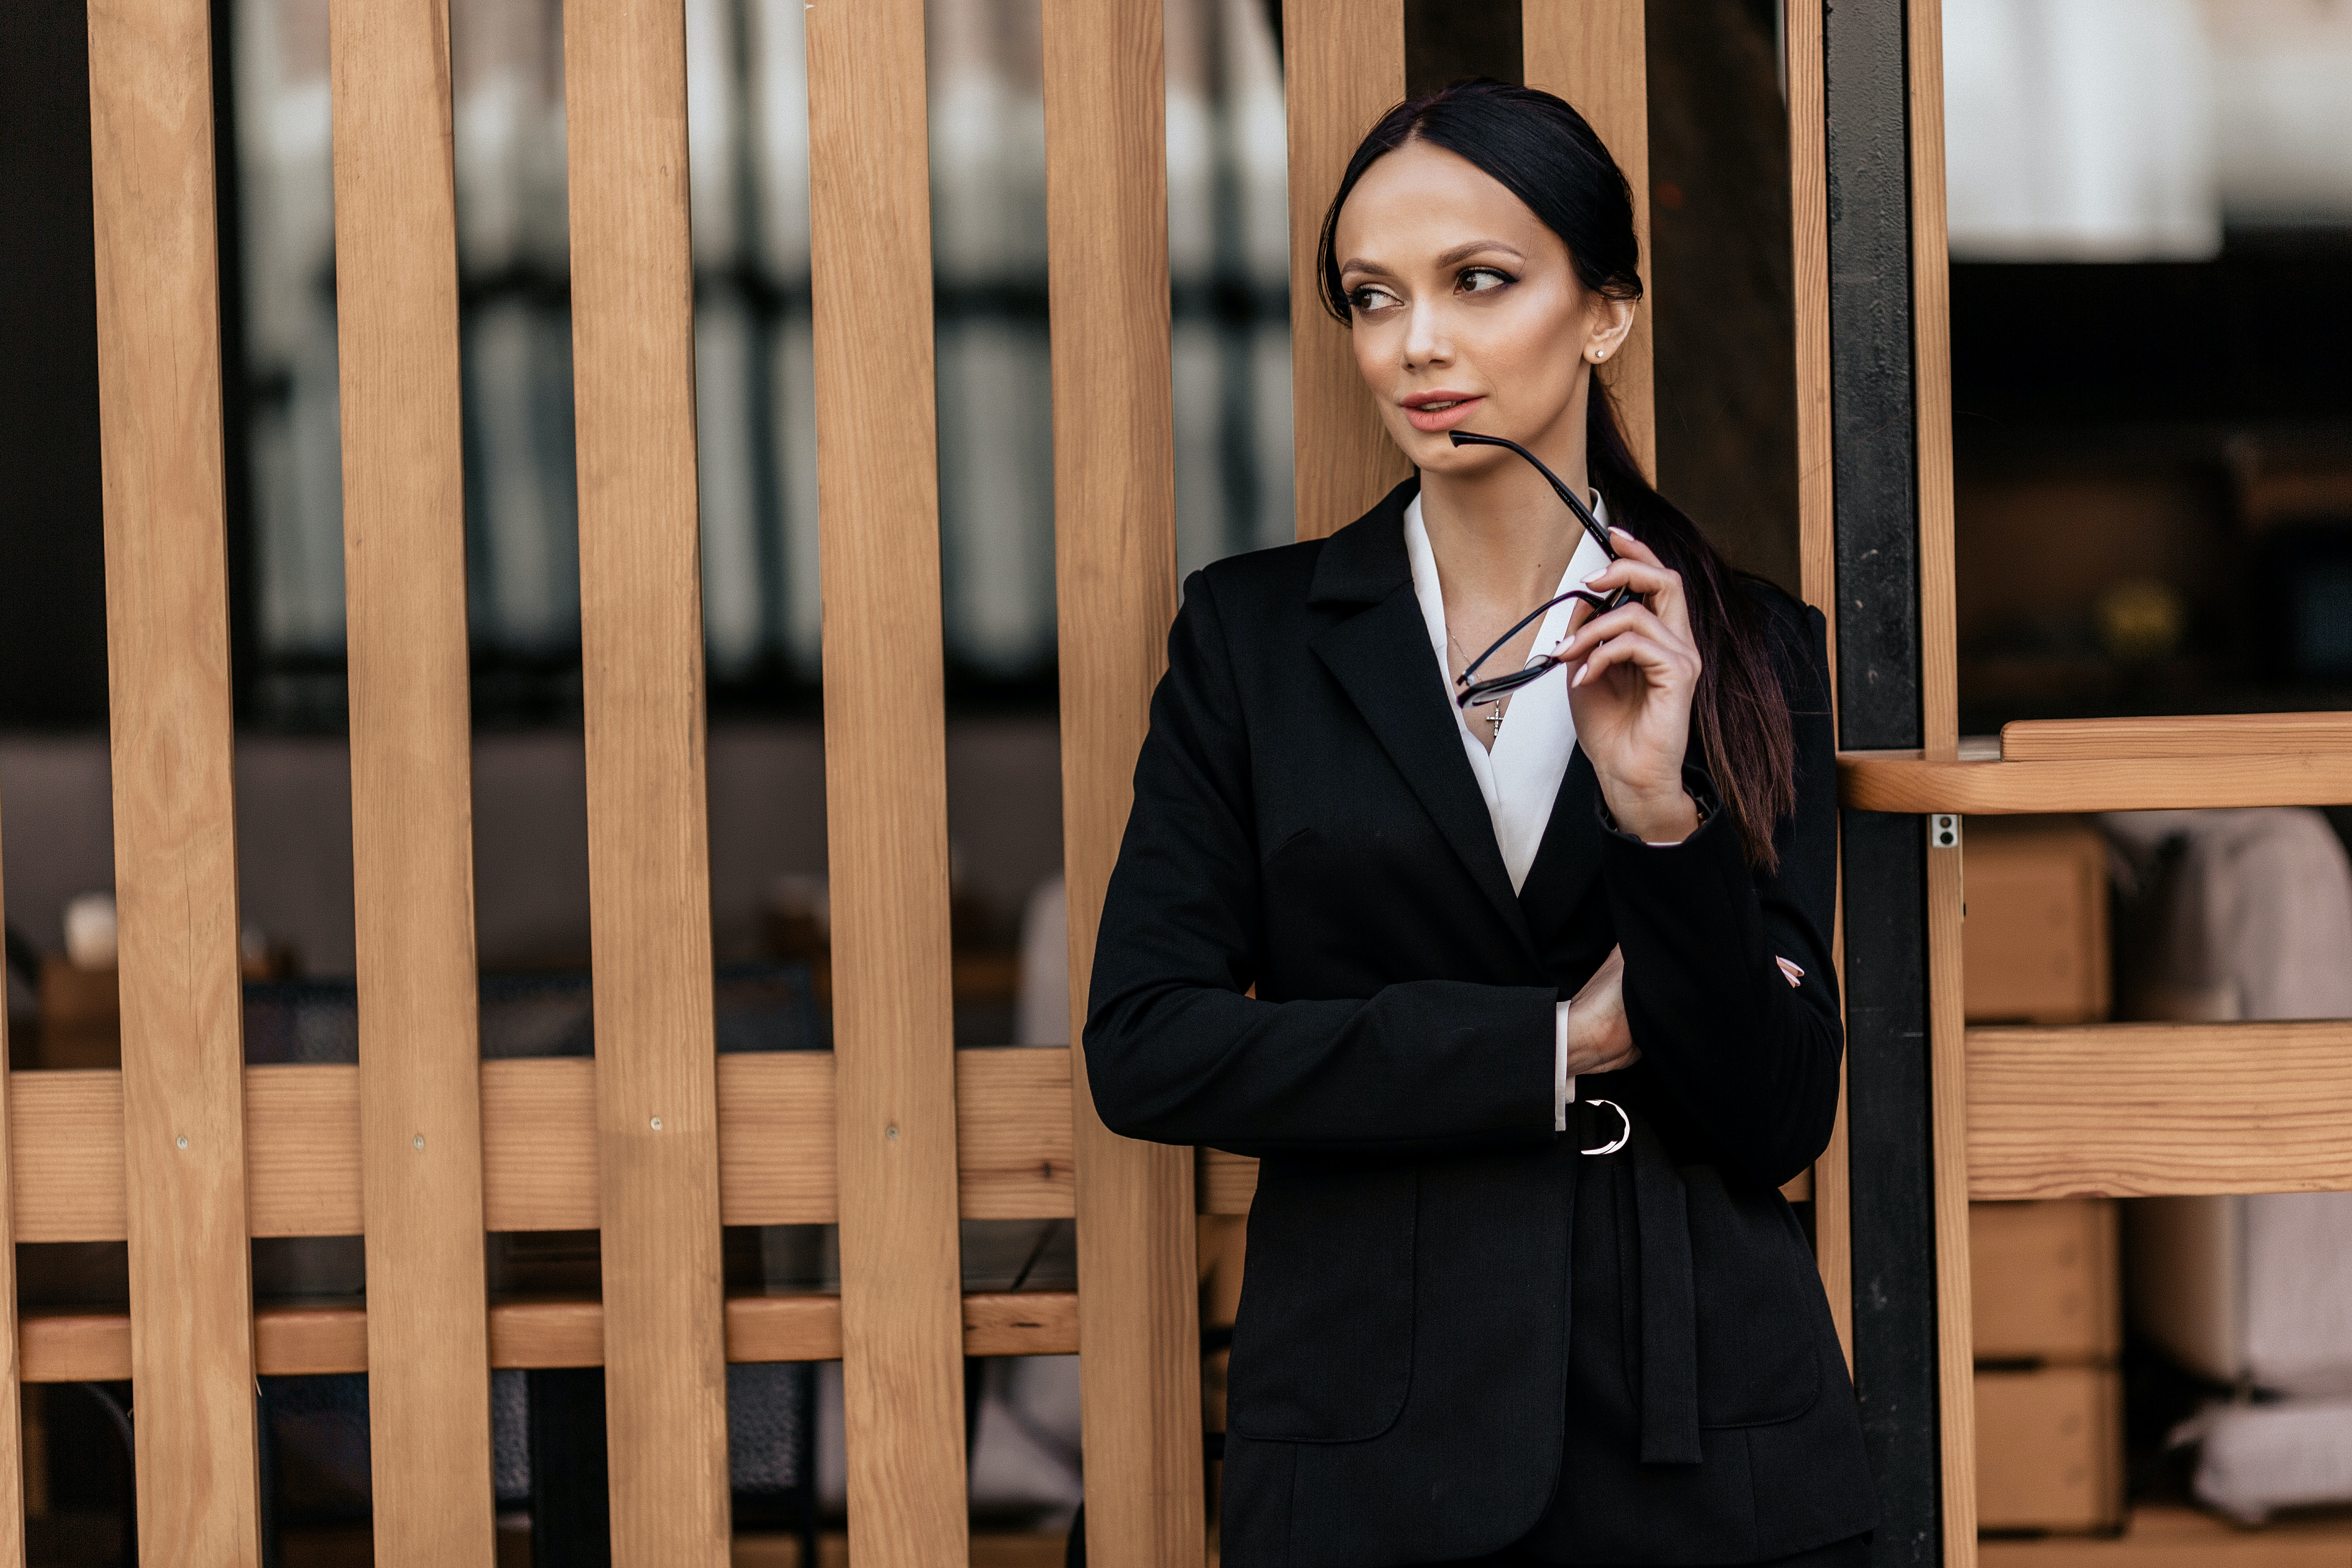 woman leaning against wall wearing black suit jacket